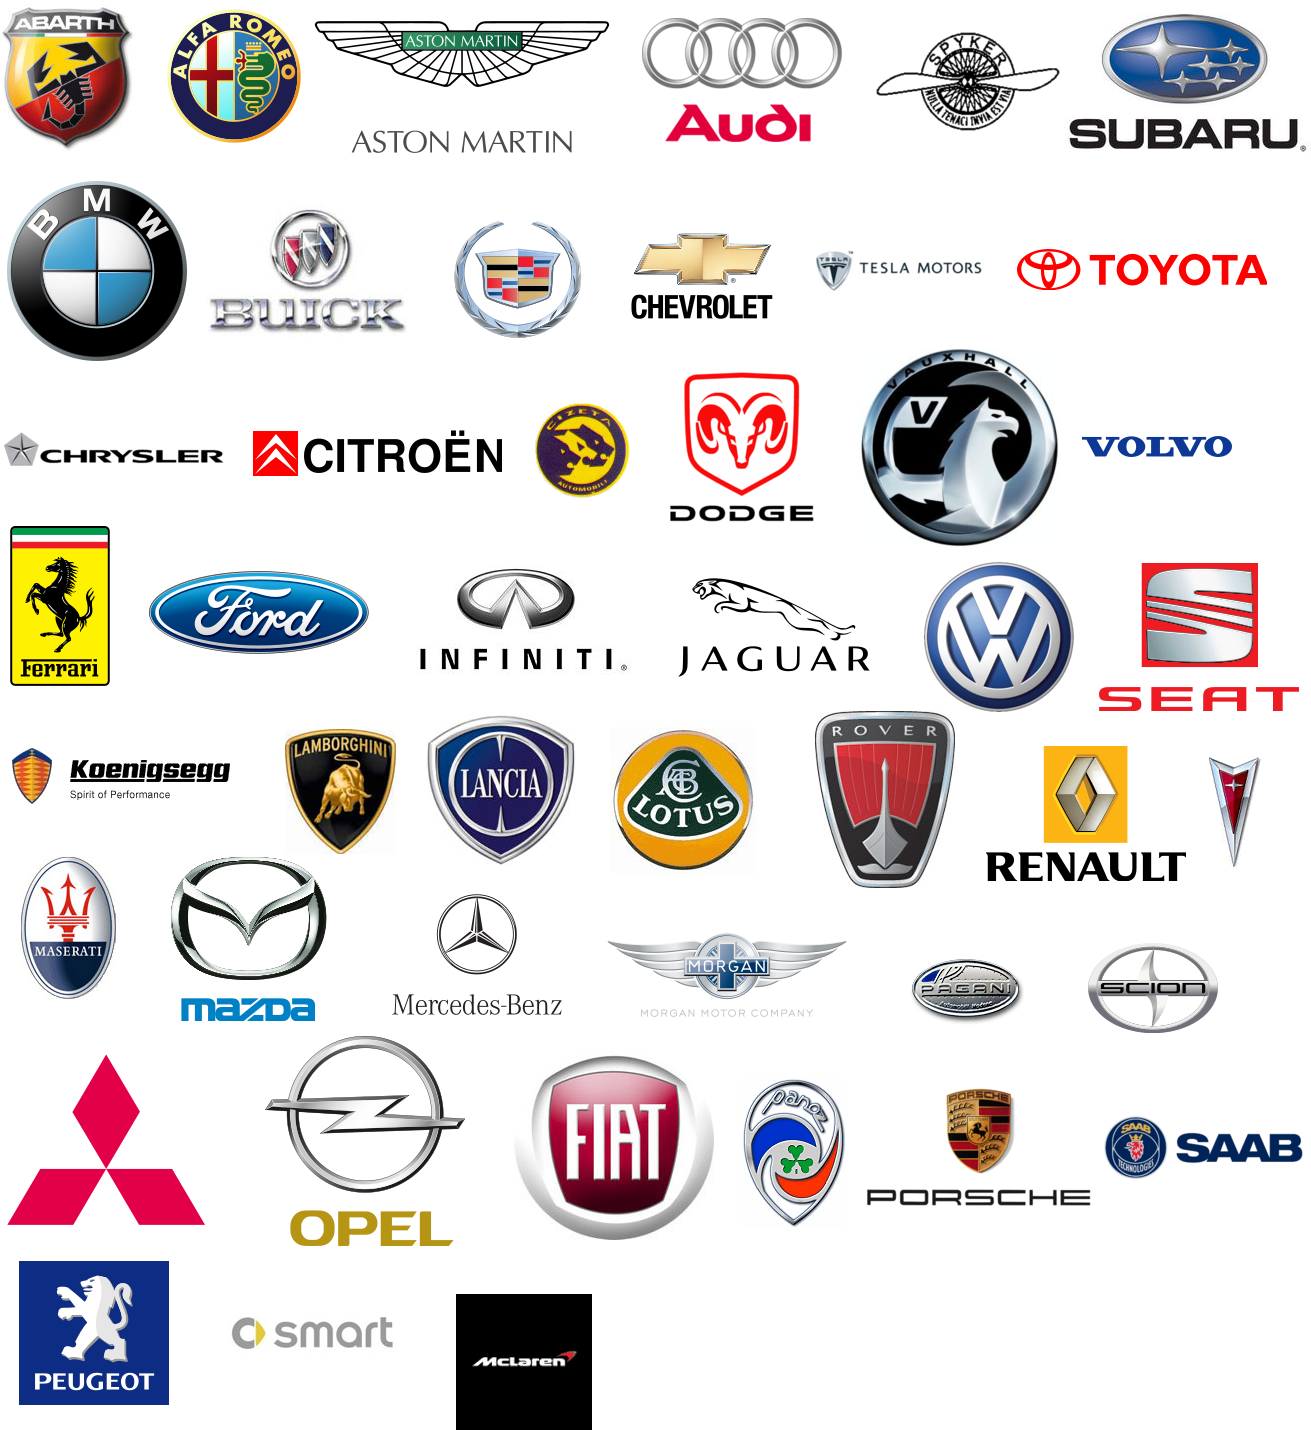 Pin By Laura C On Logos Pinterest Logos - Car sign with names